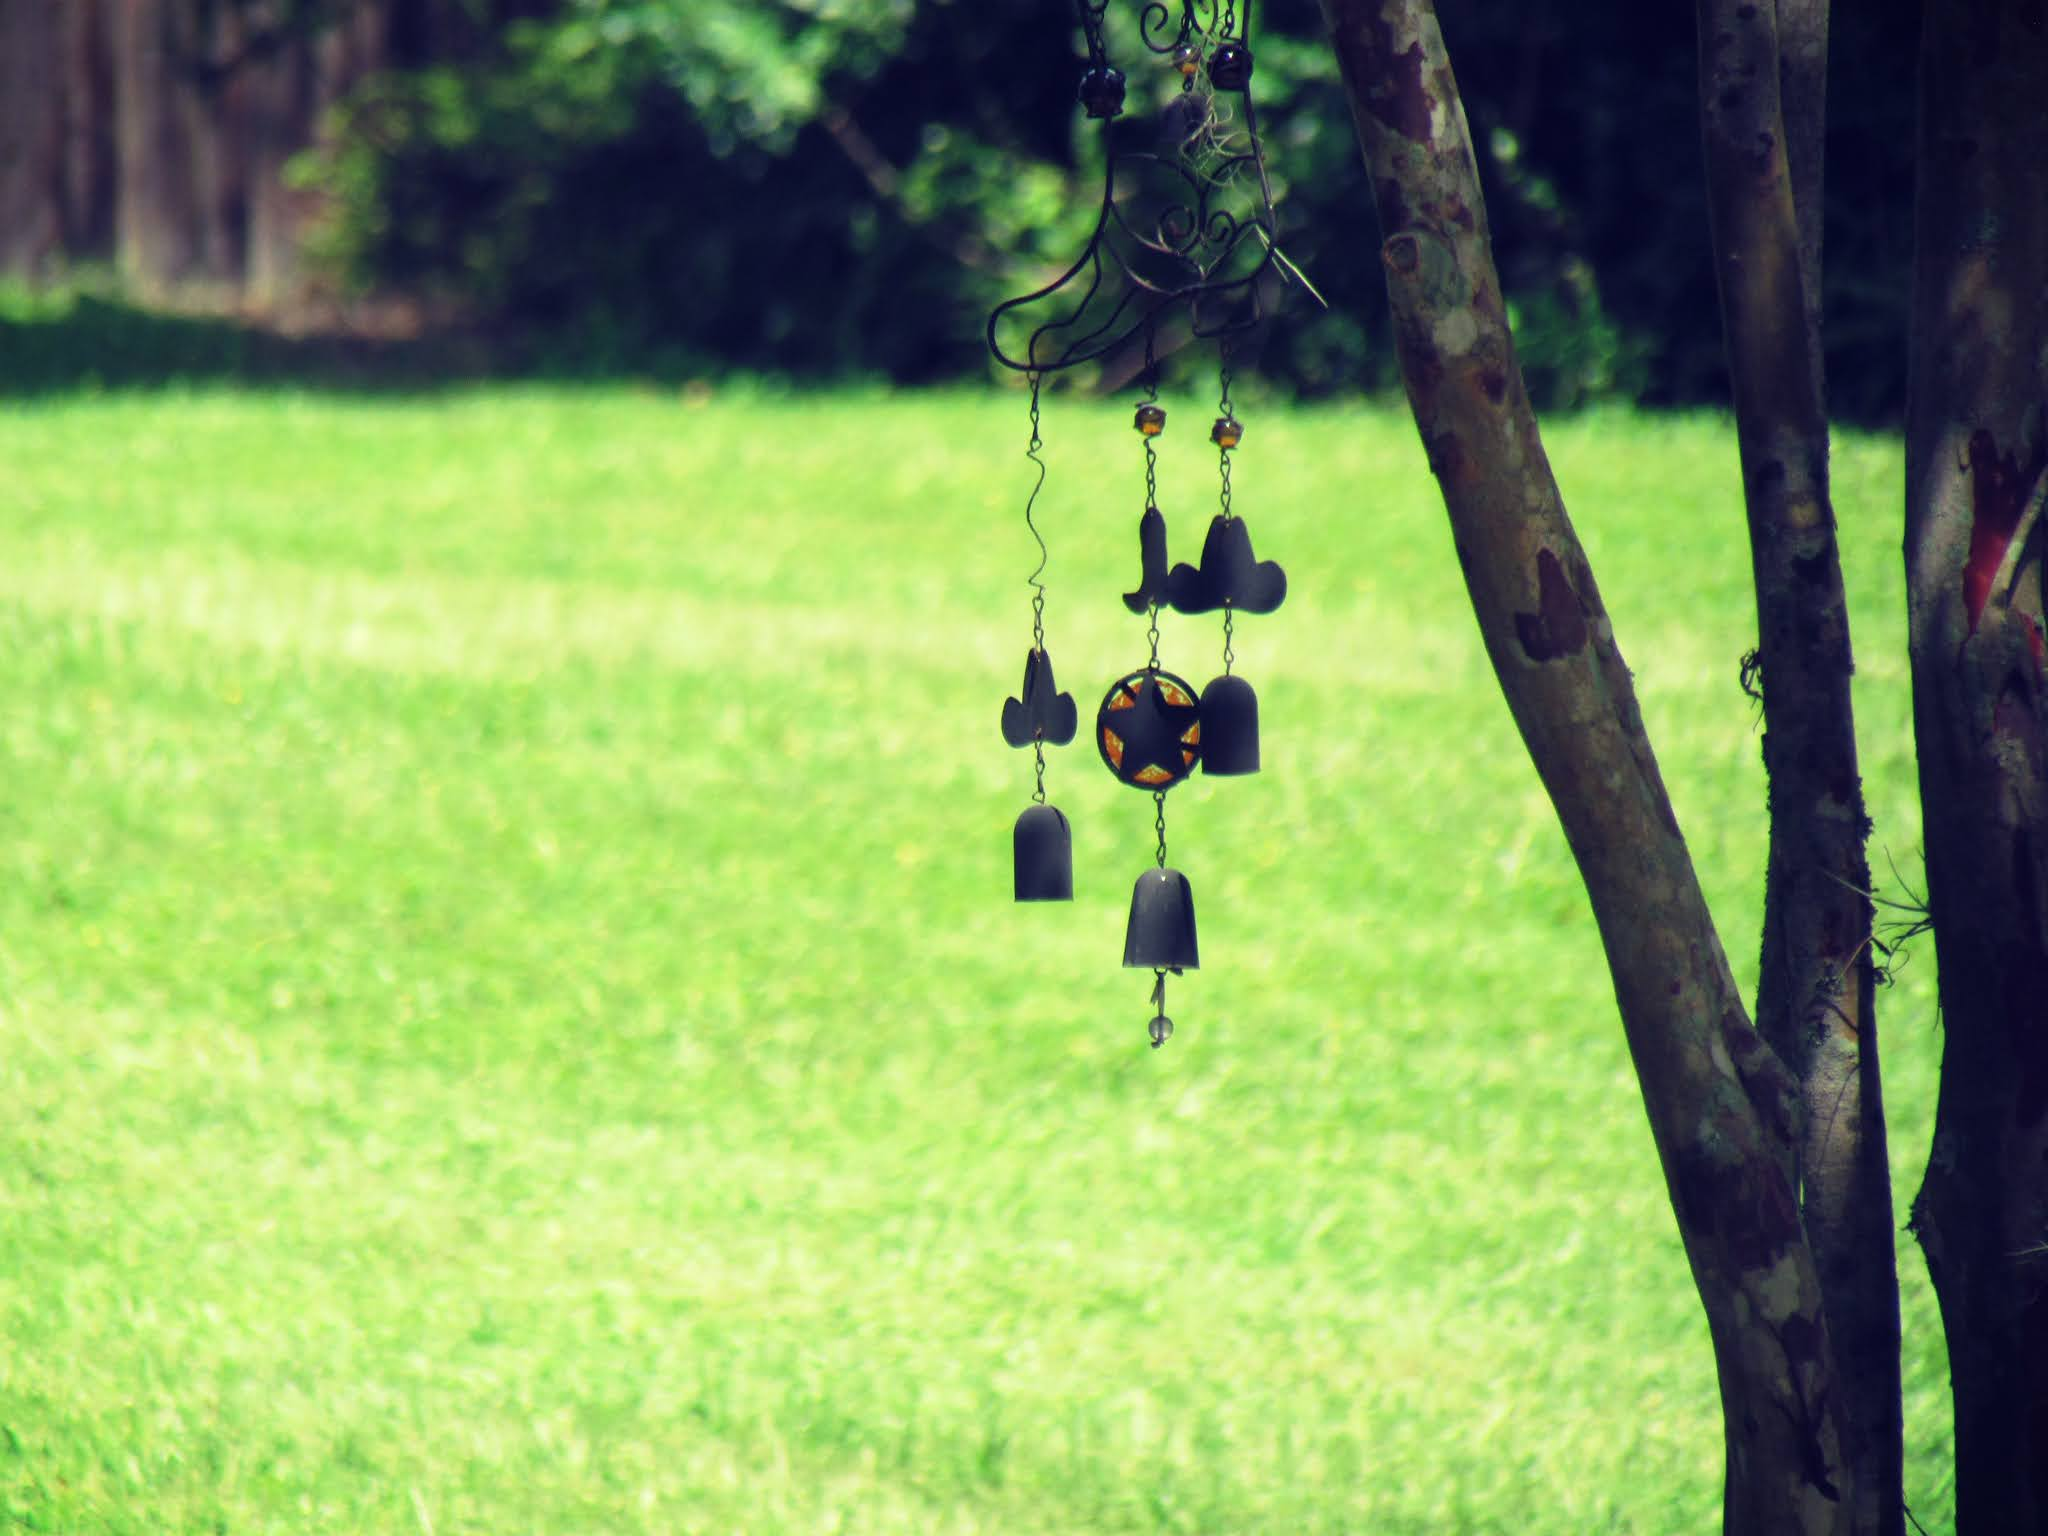 a whimsical wind chime with stars and cloud shapes blowing in the warm summer breeze in a Florida cemetery